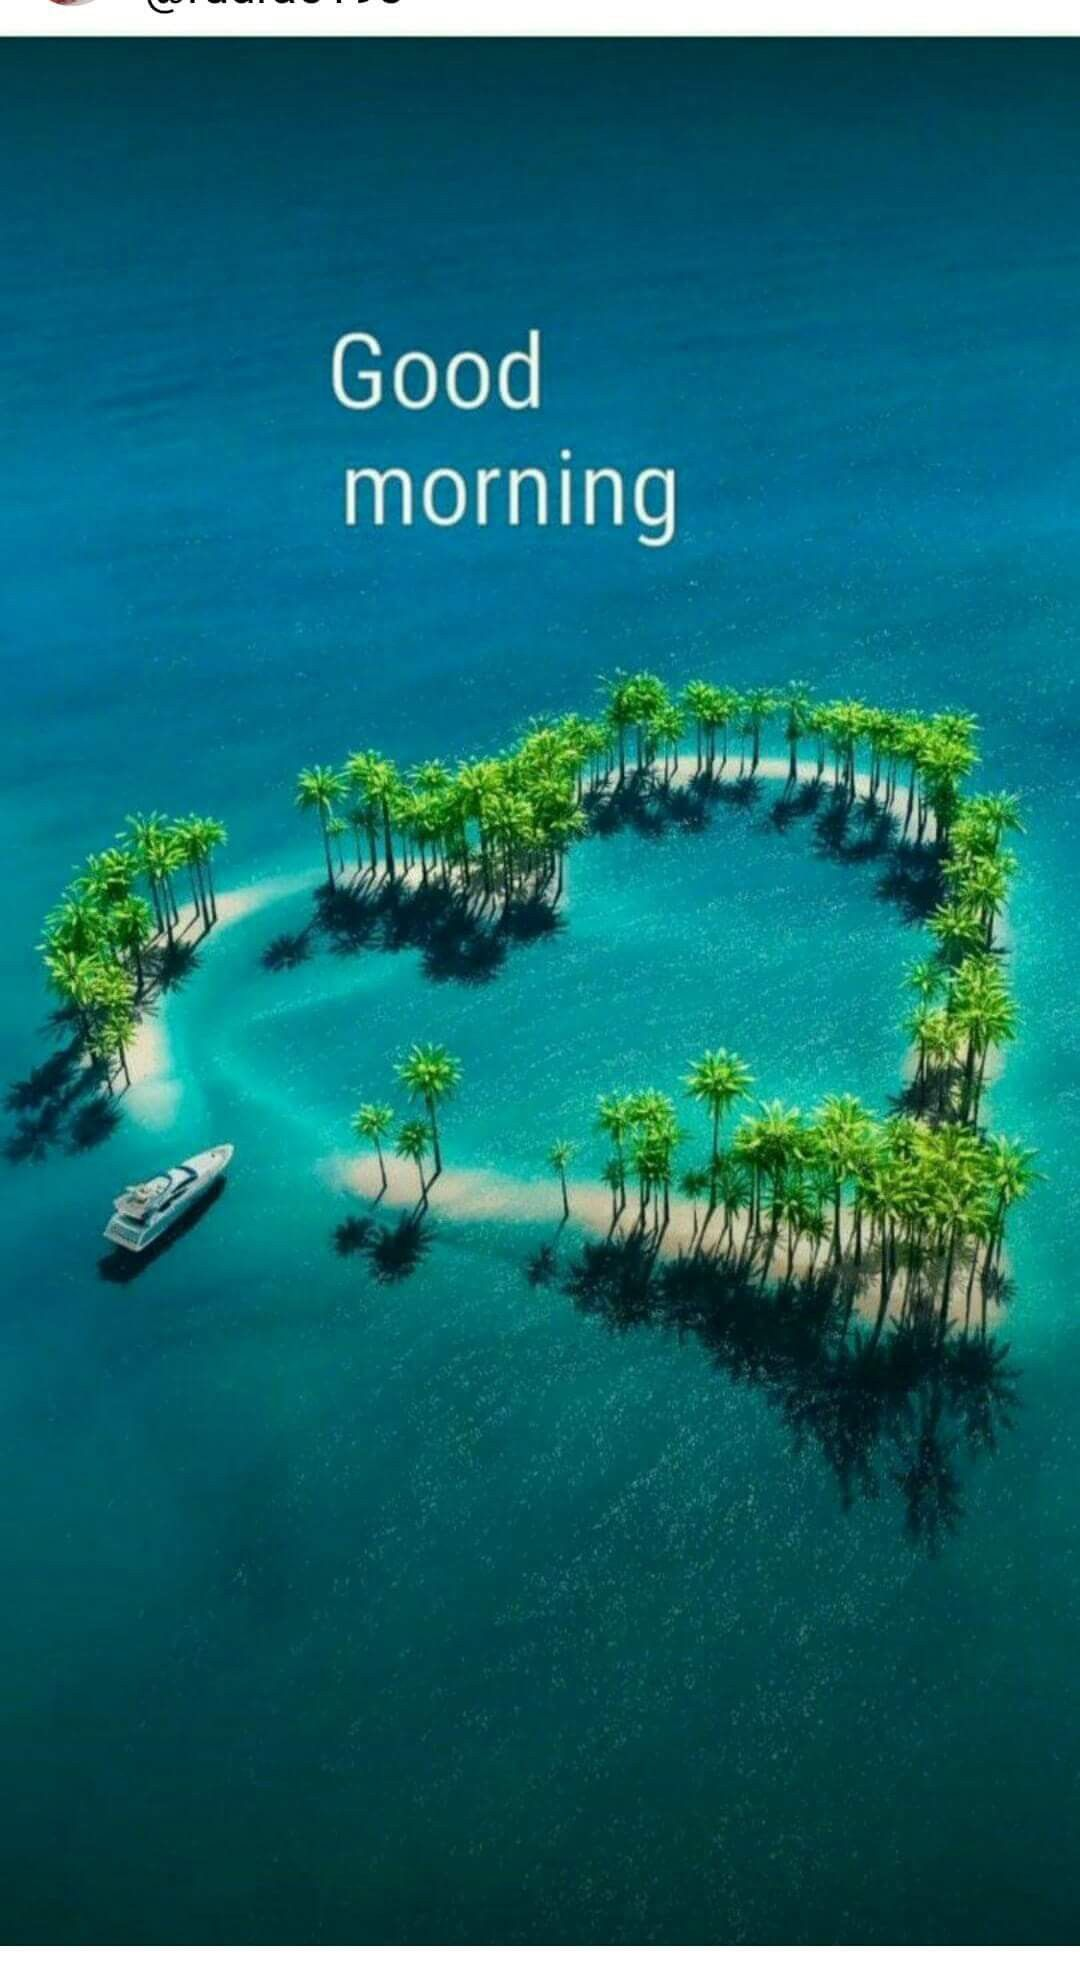 Pin by Steffi E. on good morning   Good morning images, Good ...